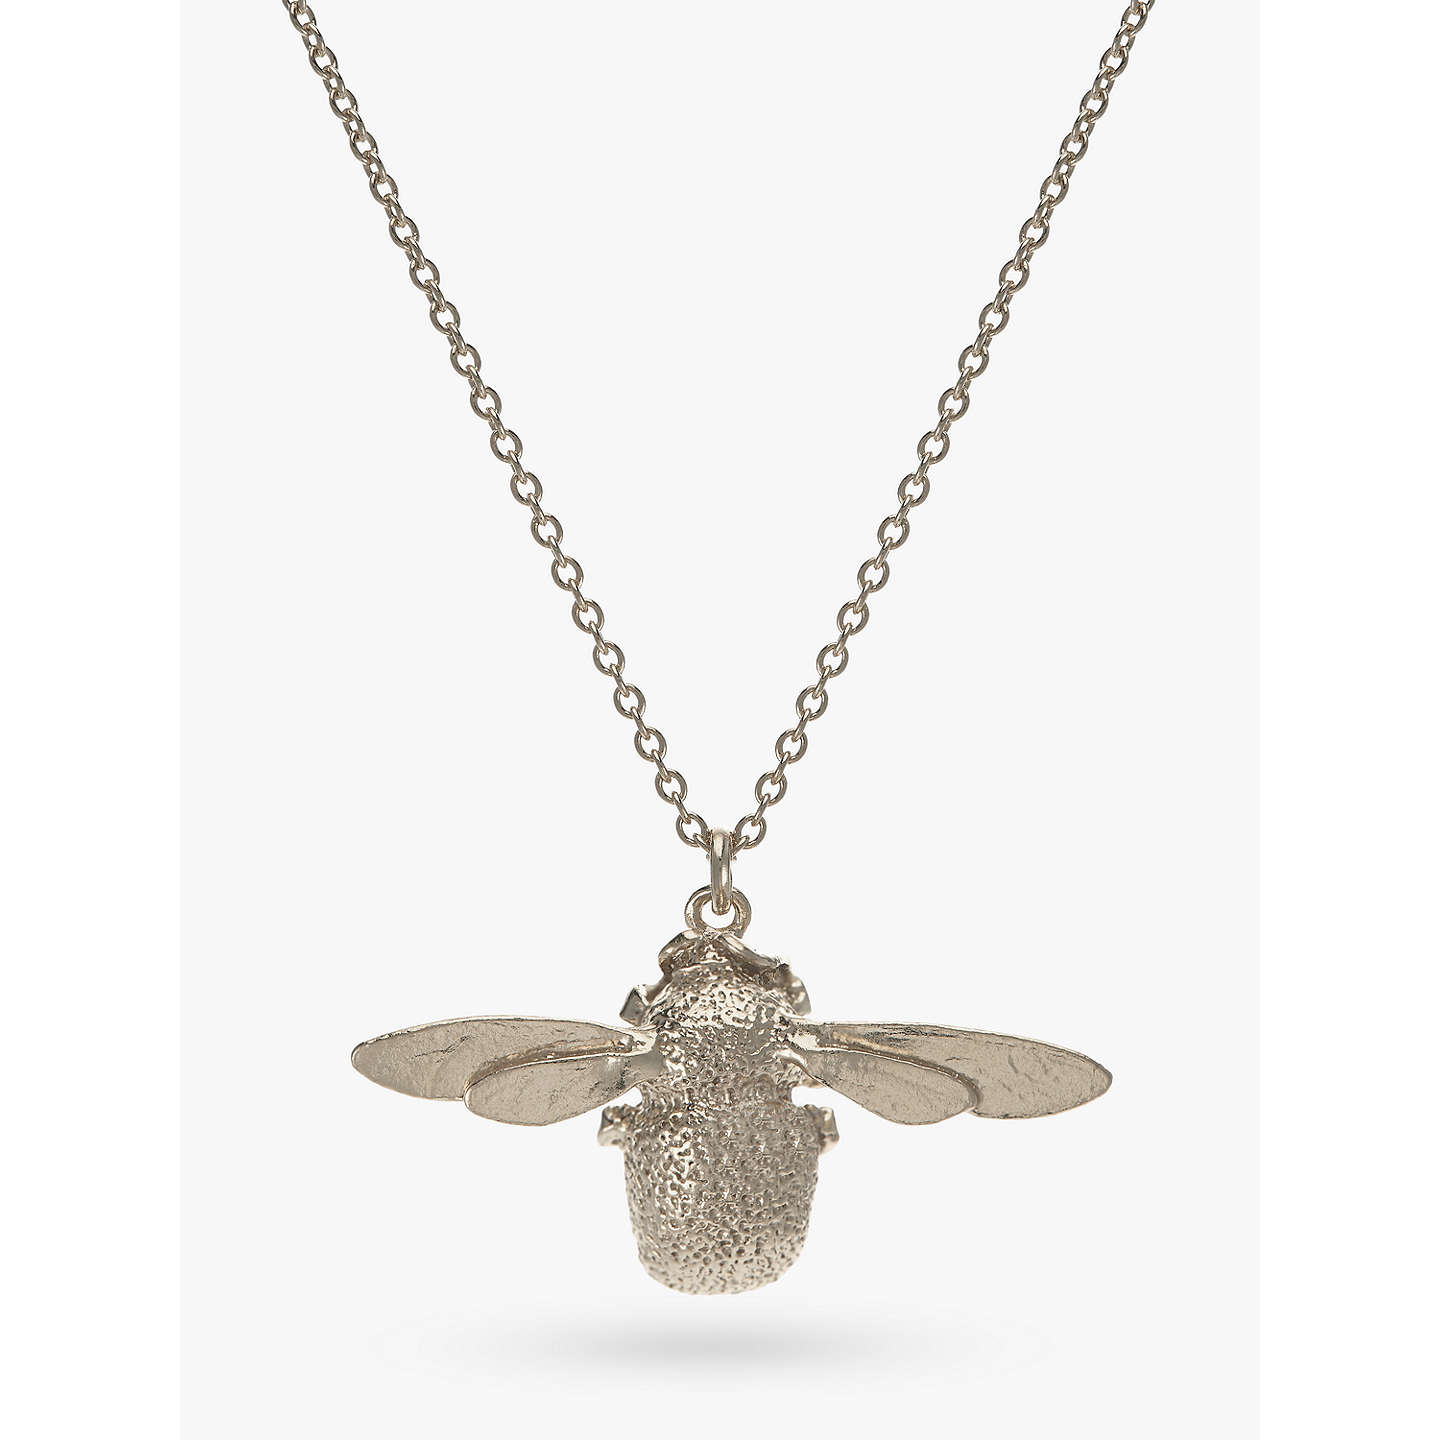 Alex monroe sterling silver bumble bee pendant necklace silver at buyalex monroe sterling silver bumble bee pendant necklace silver online at johnlewis aloadofball